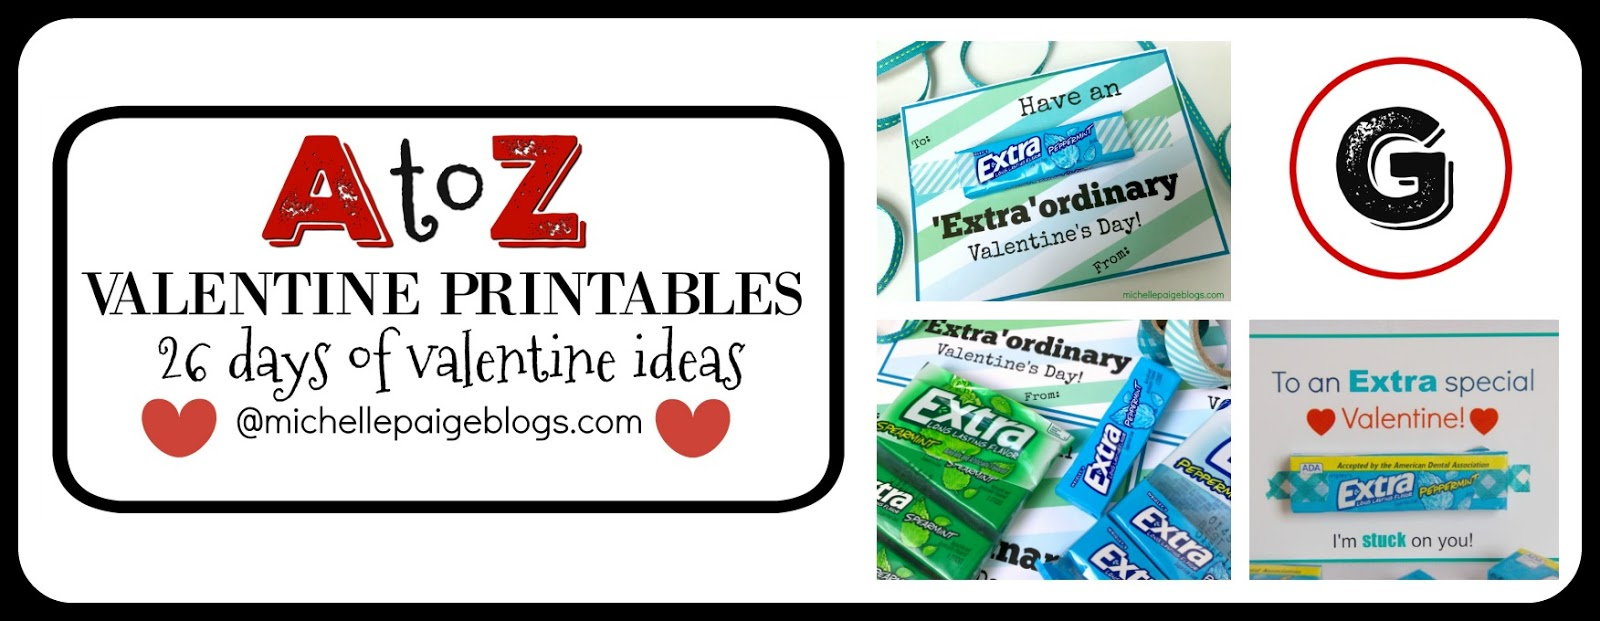 It's just a picture of Effortless Extra Gum Valentine Printable